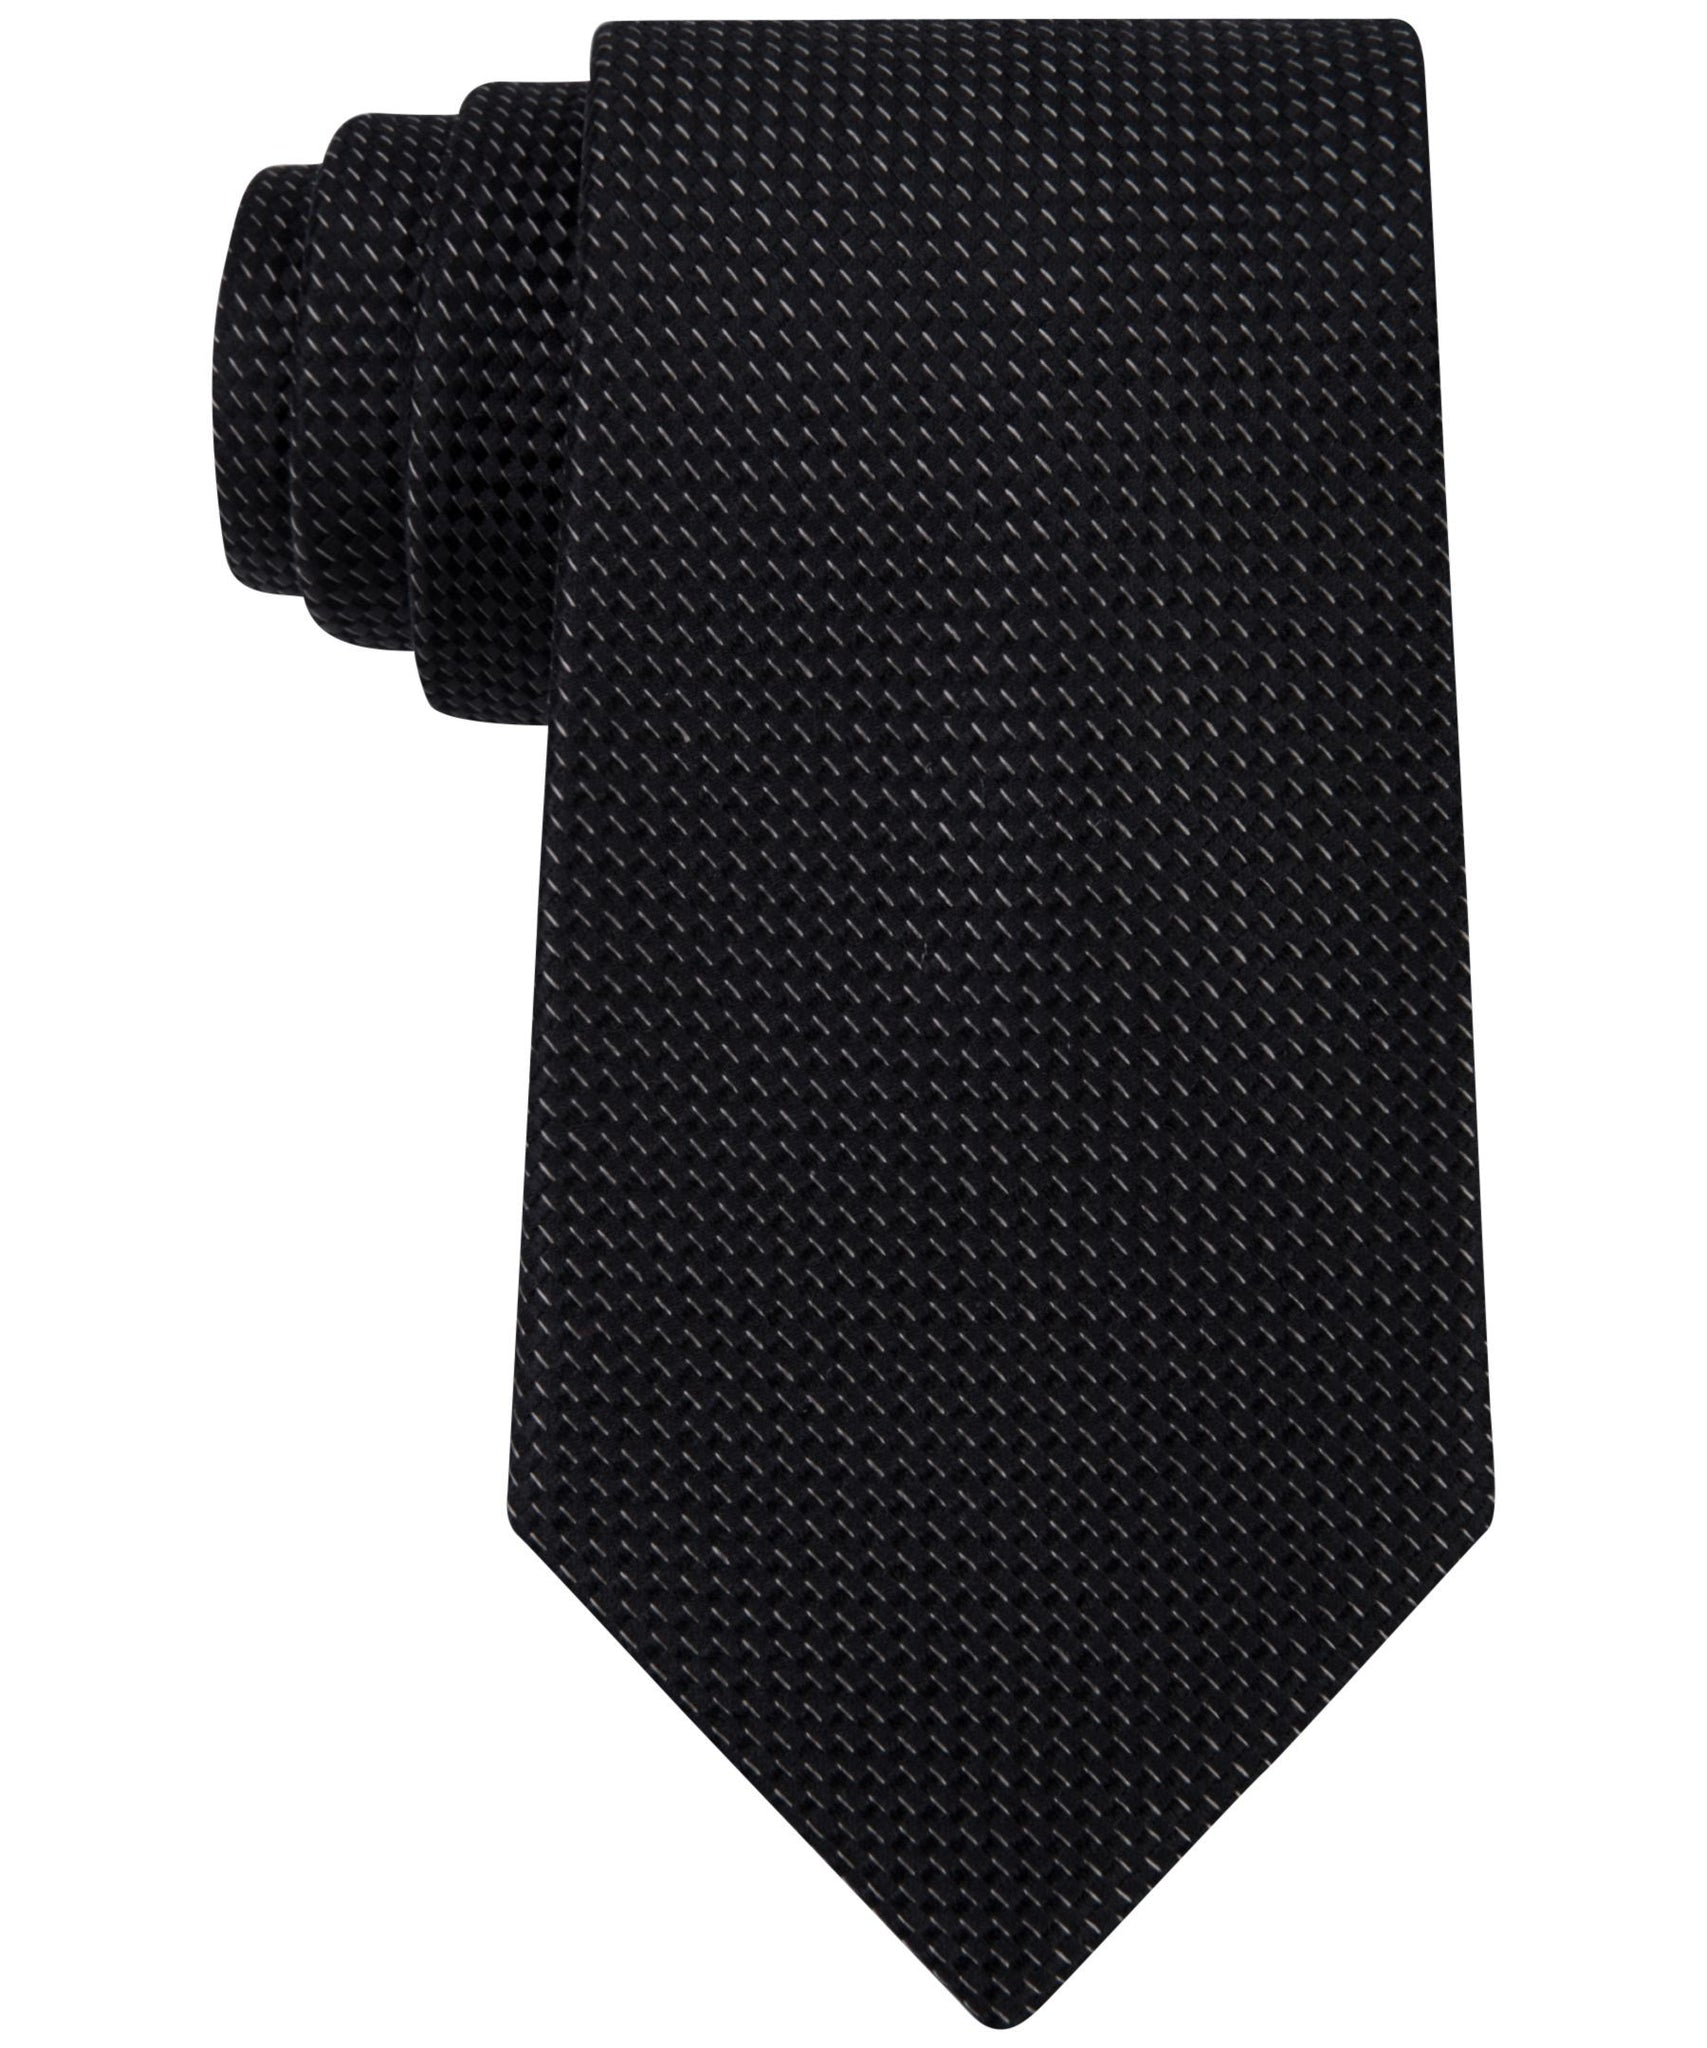 Michael Kors Rome Semi Solid Tie Black One Size